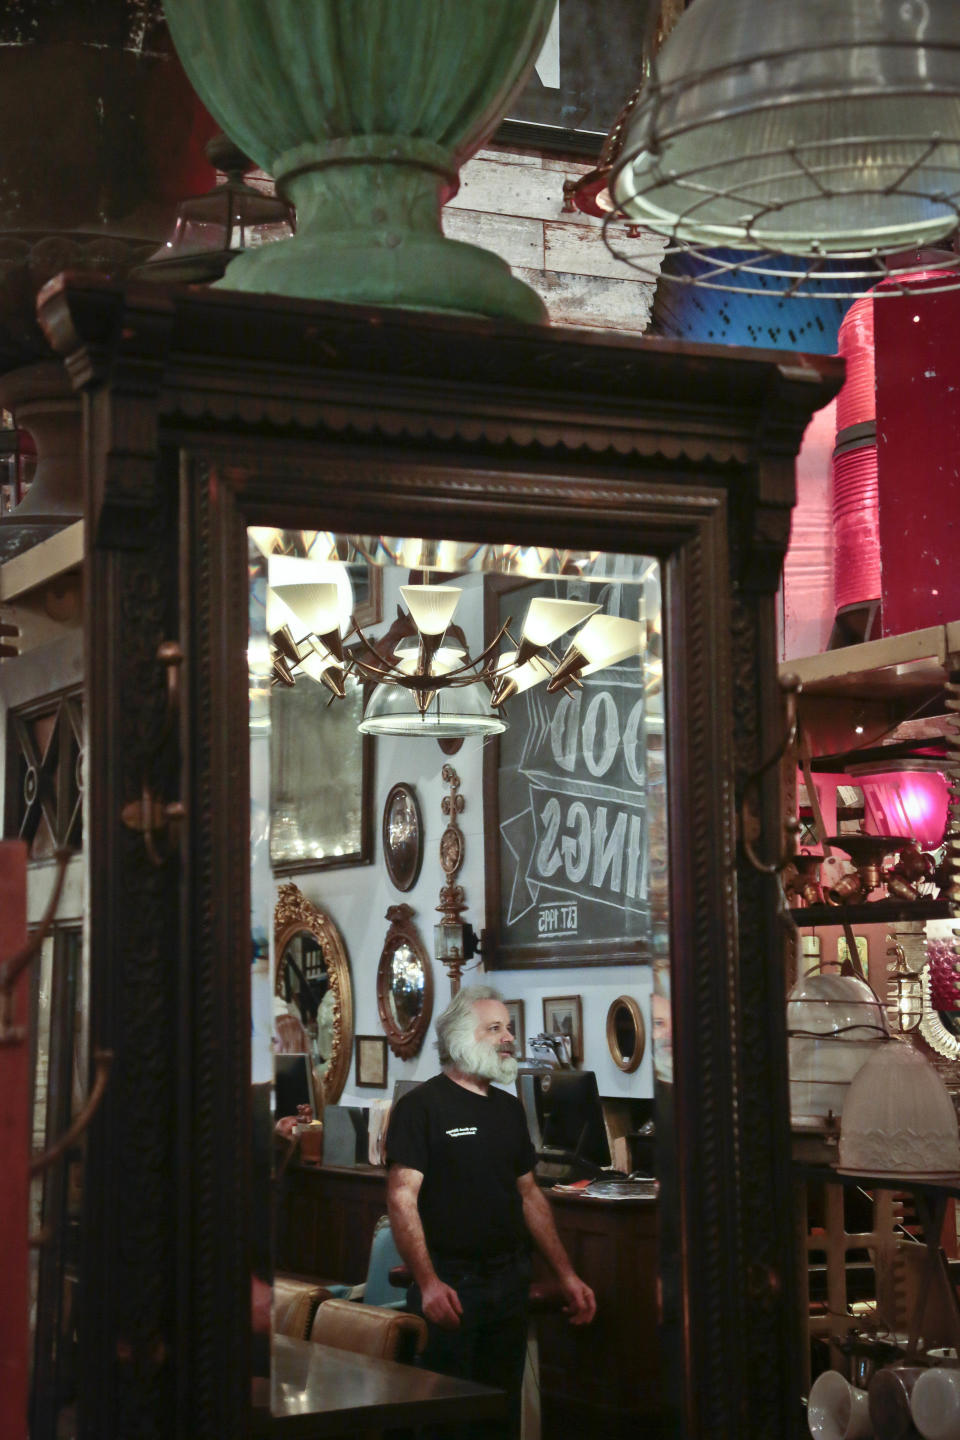 In this Nov. 22, 2013 photo, store manager Jim Digiacoma is reflected in a mirror at the Olde Good Things antique store in New York. The store's Christian missionary owners offer their well-heeled customers a heart-warming story: Part of the proceeds pay for the group's orphanage in Haiti, one of the poorest countries in the world. What they don't say is that even though they claim in IRS filings to be spending around $2.5 million annually, the home for boys and girls was so dirty and overcrowded during recent inspections that the government said it shouldn't remain open. (AP Photo/Bebeto Matthews)